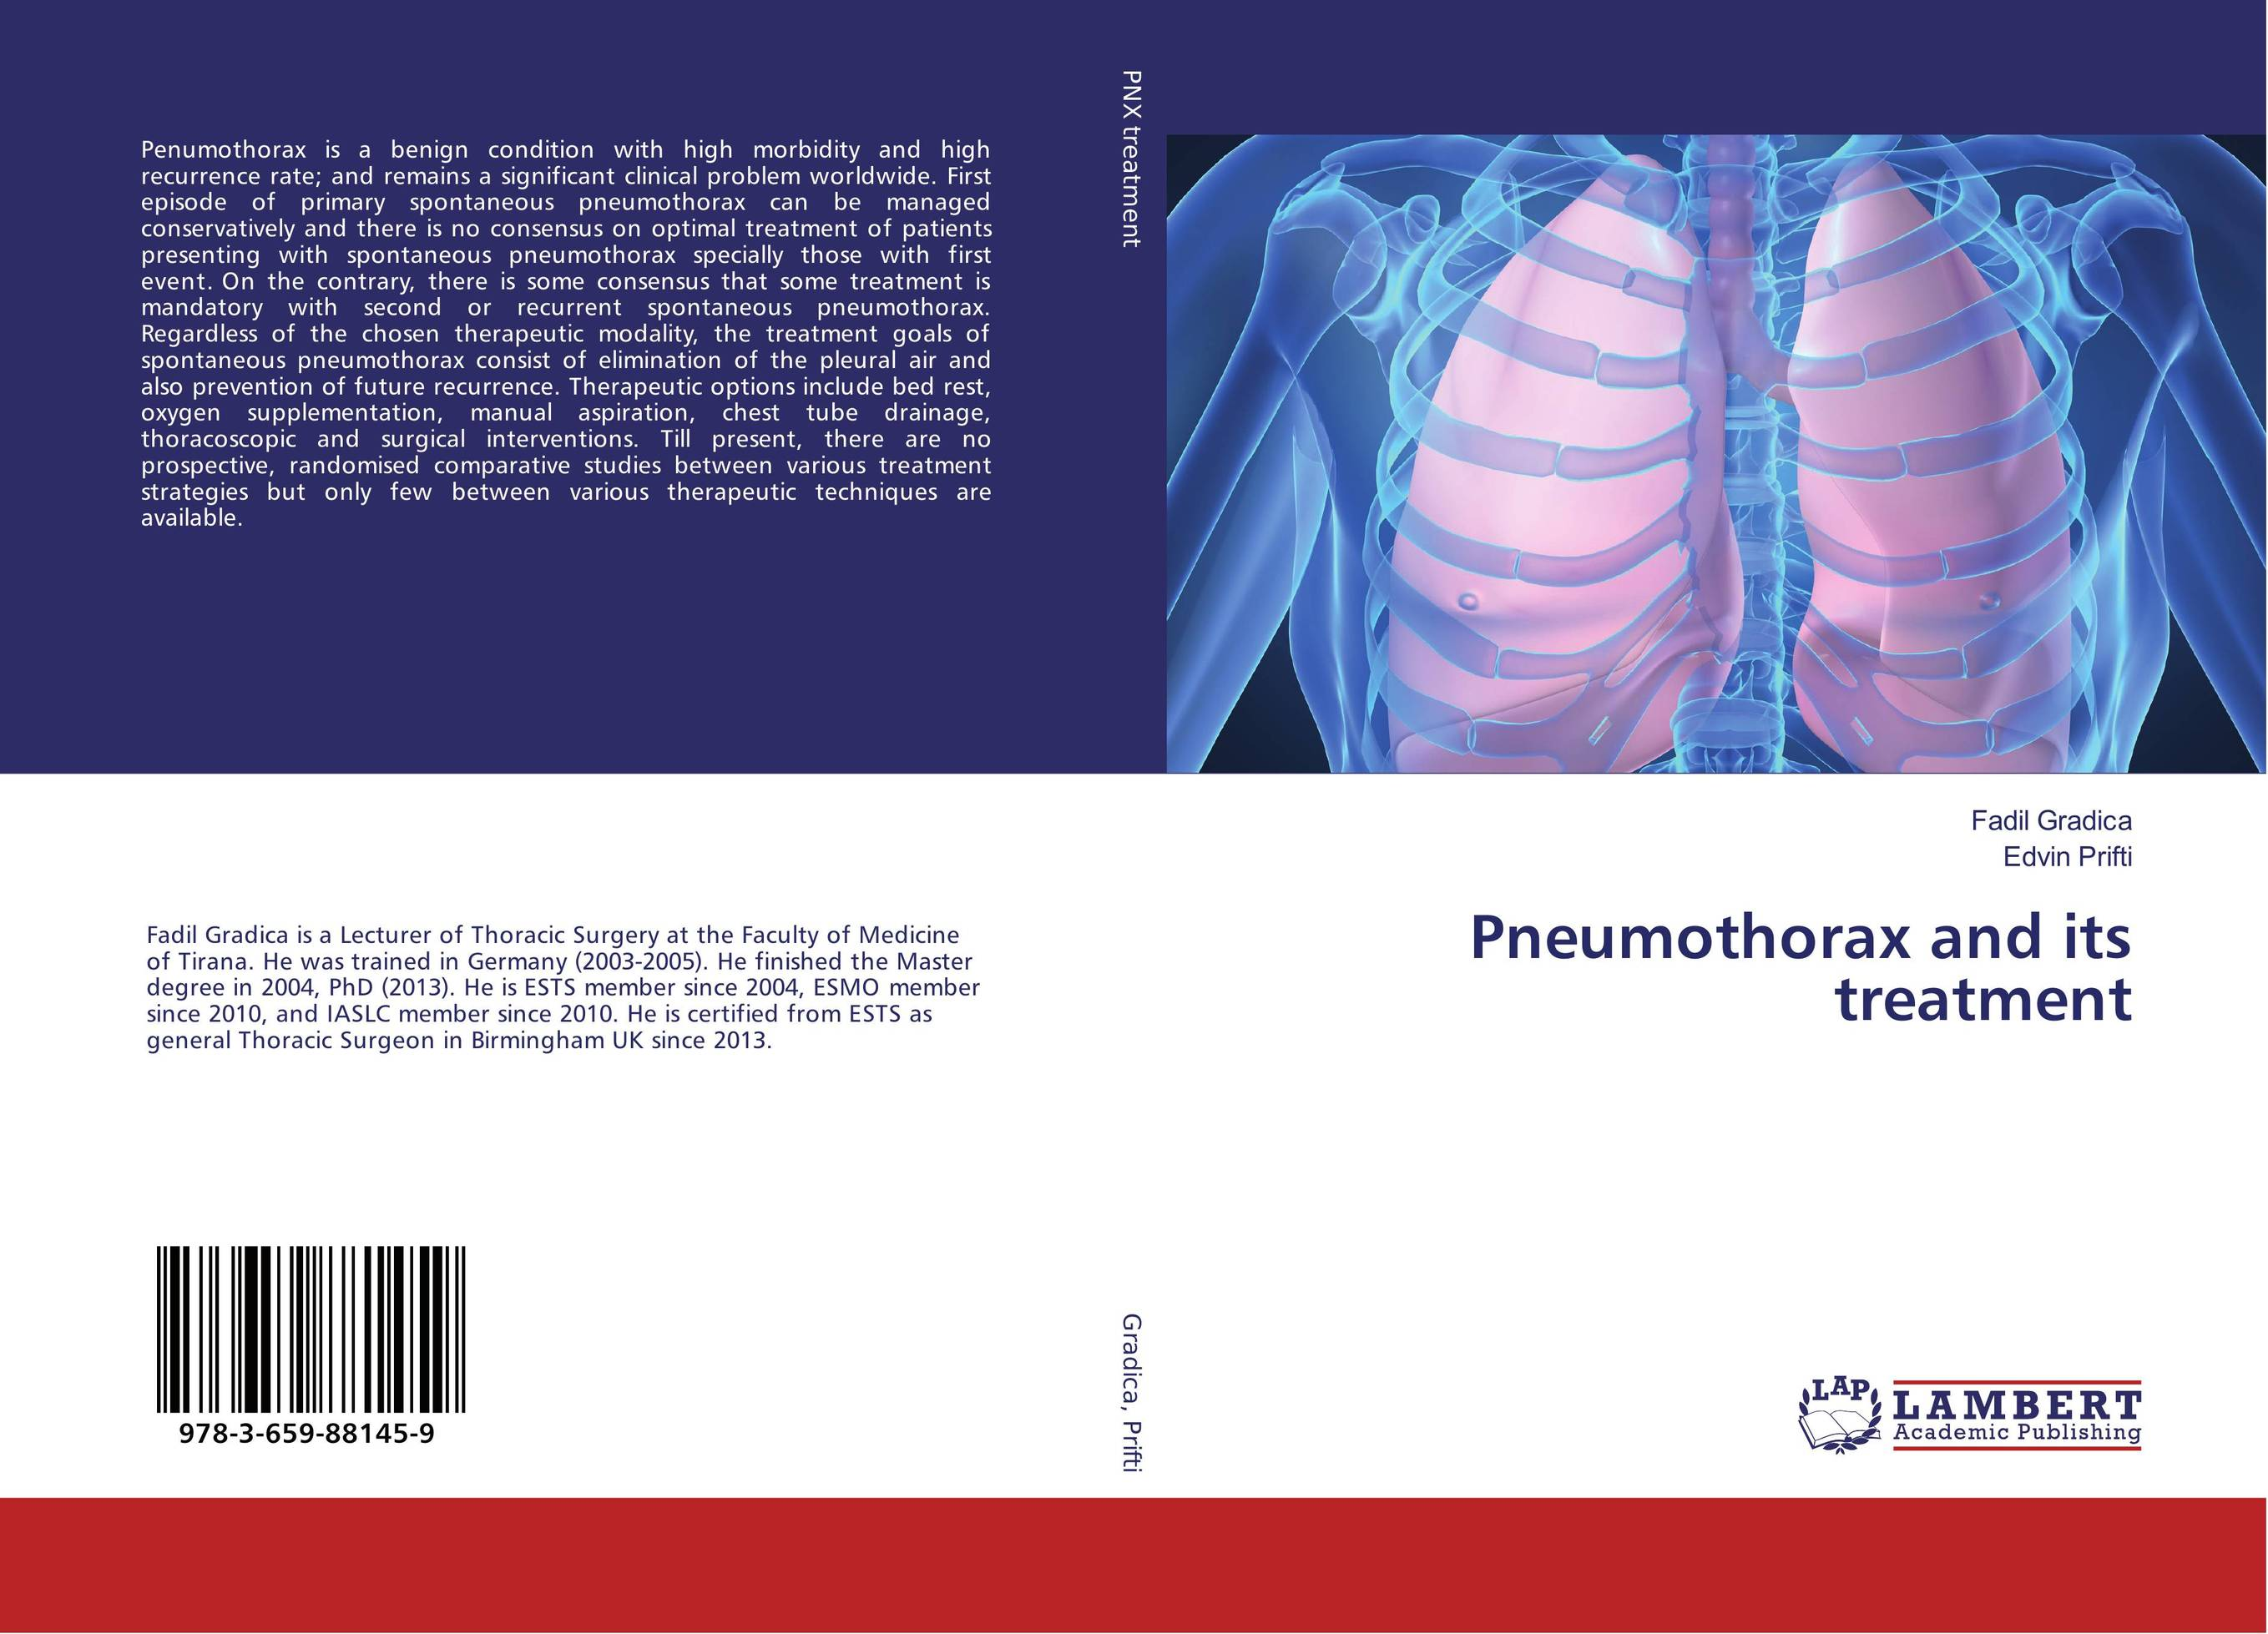 Pneumothorax and its treatment case history of therapeutic patient manual